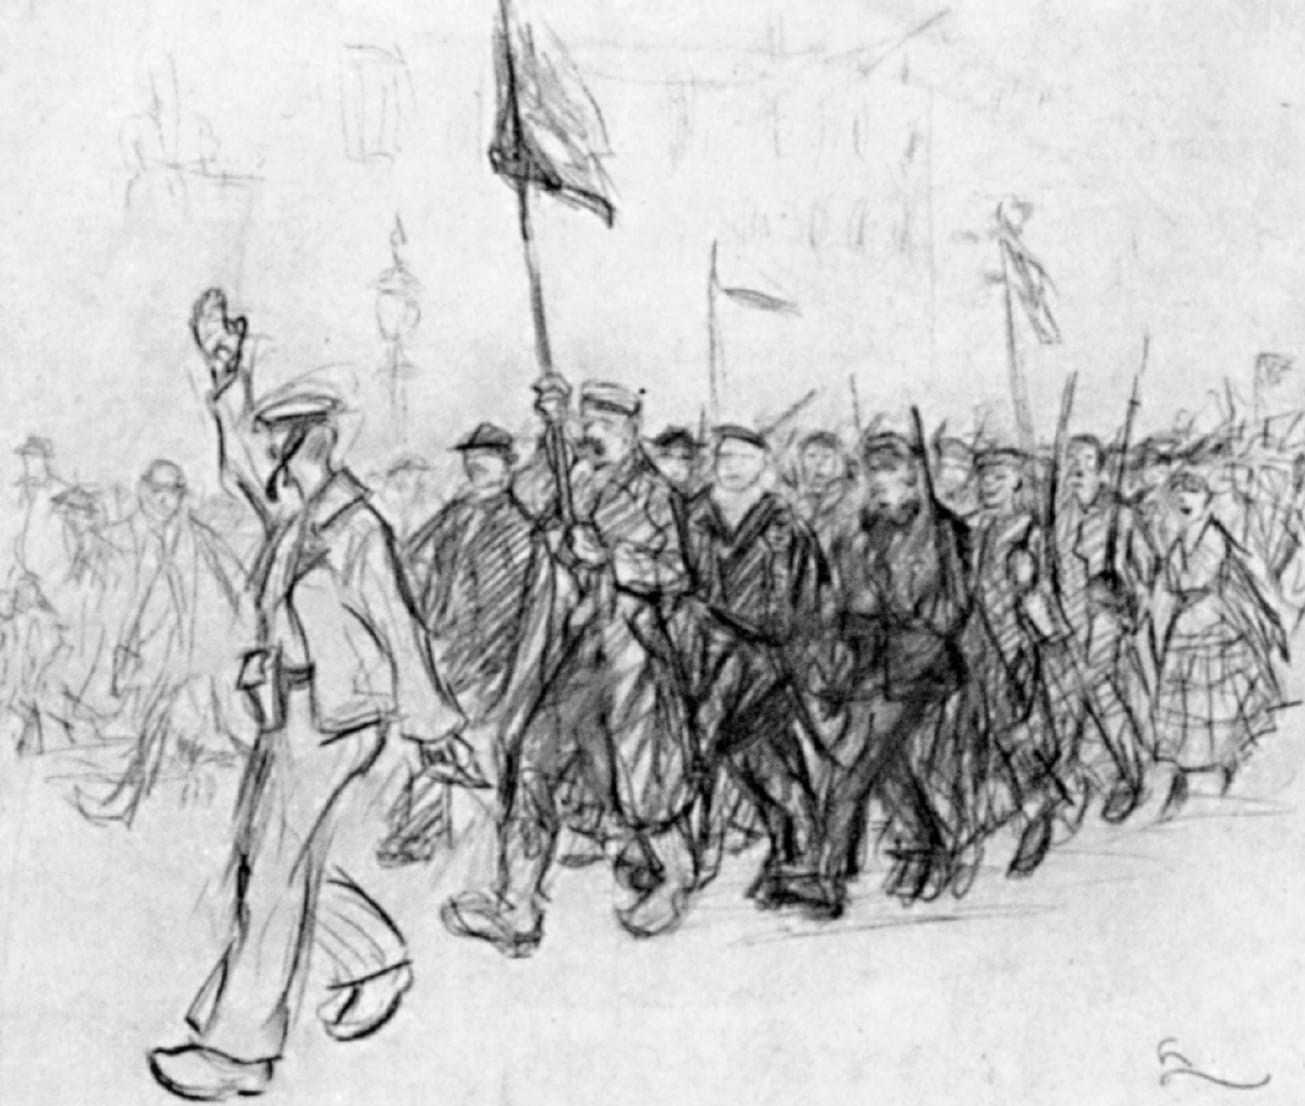 Demonstration in Hamburg, Zeichnung von Hans Leip, 1918